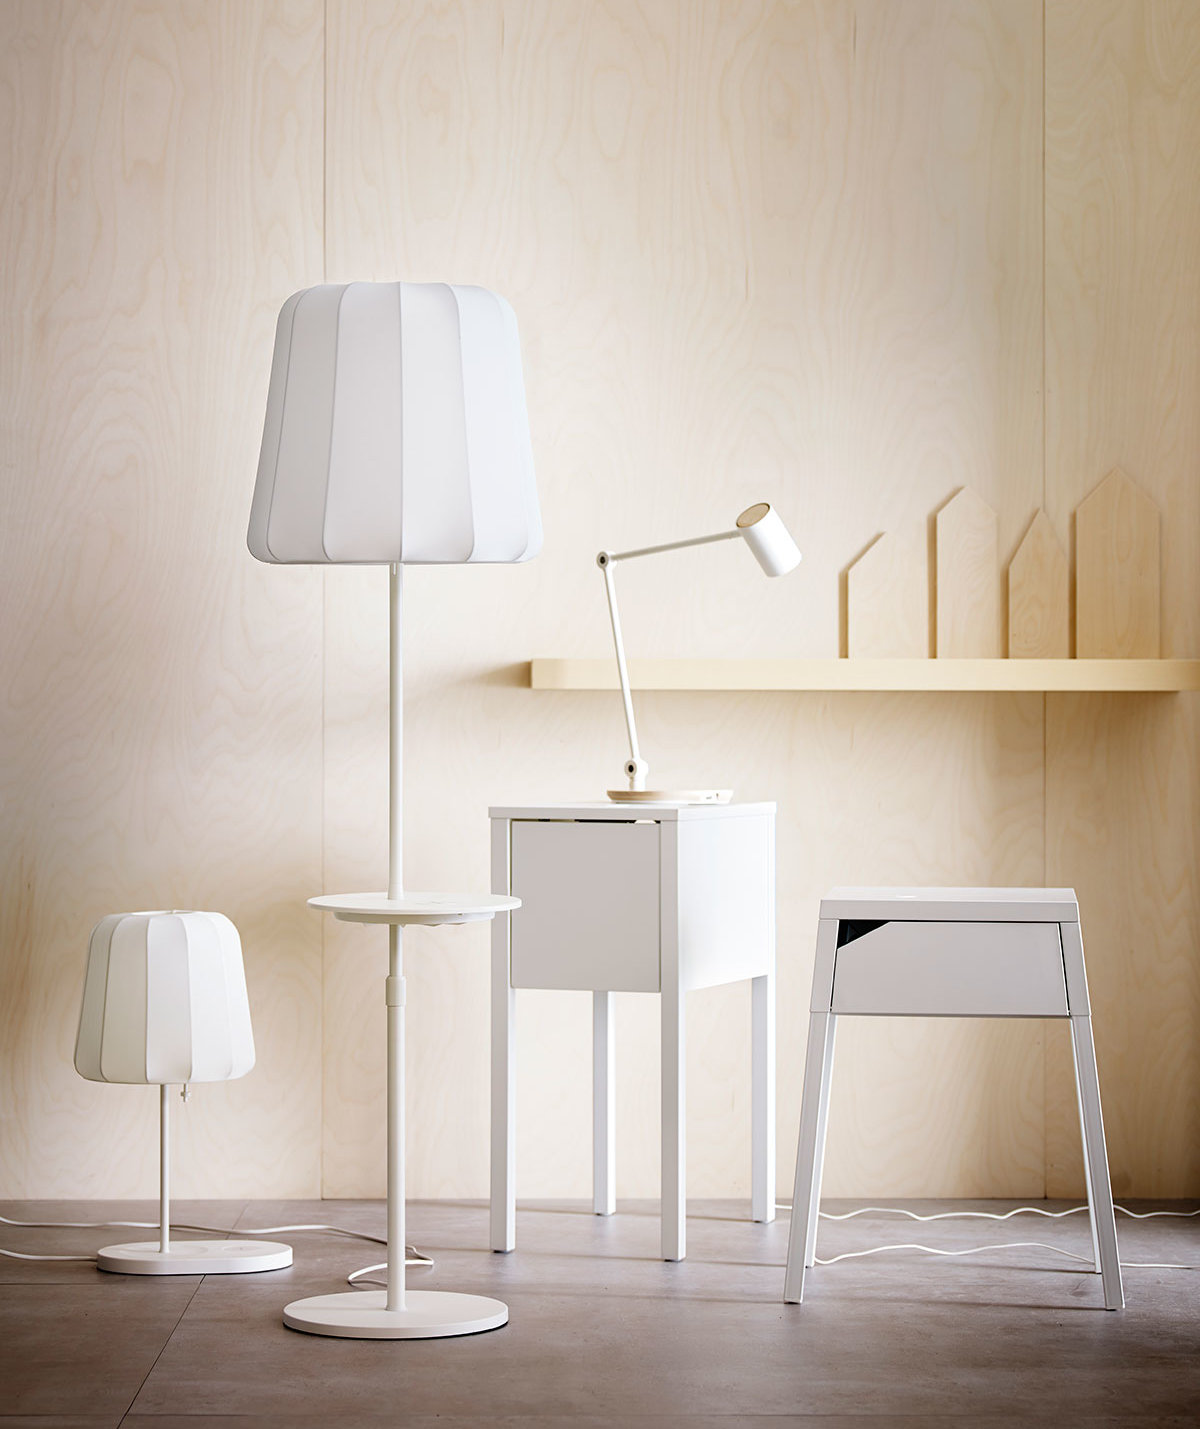 ikea-wireless-charging-collection